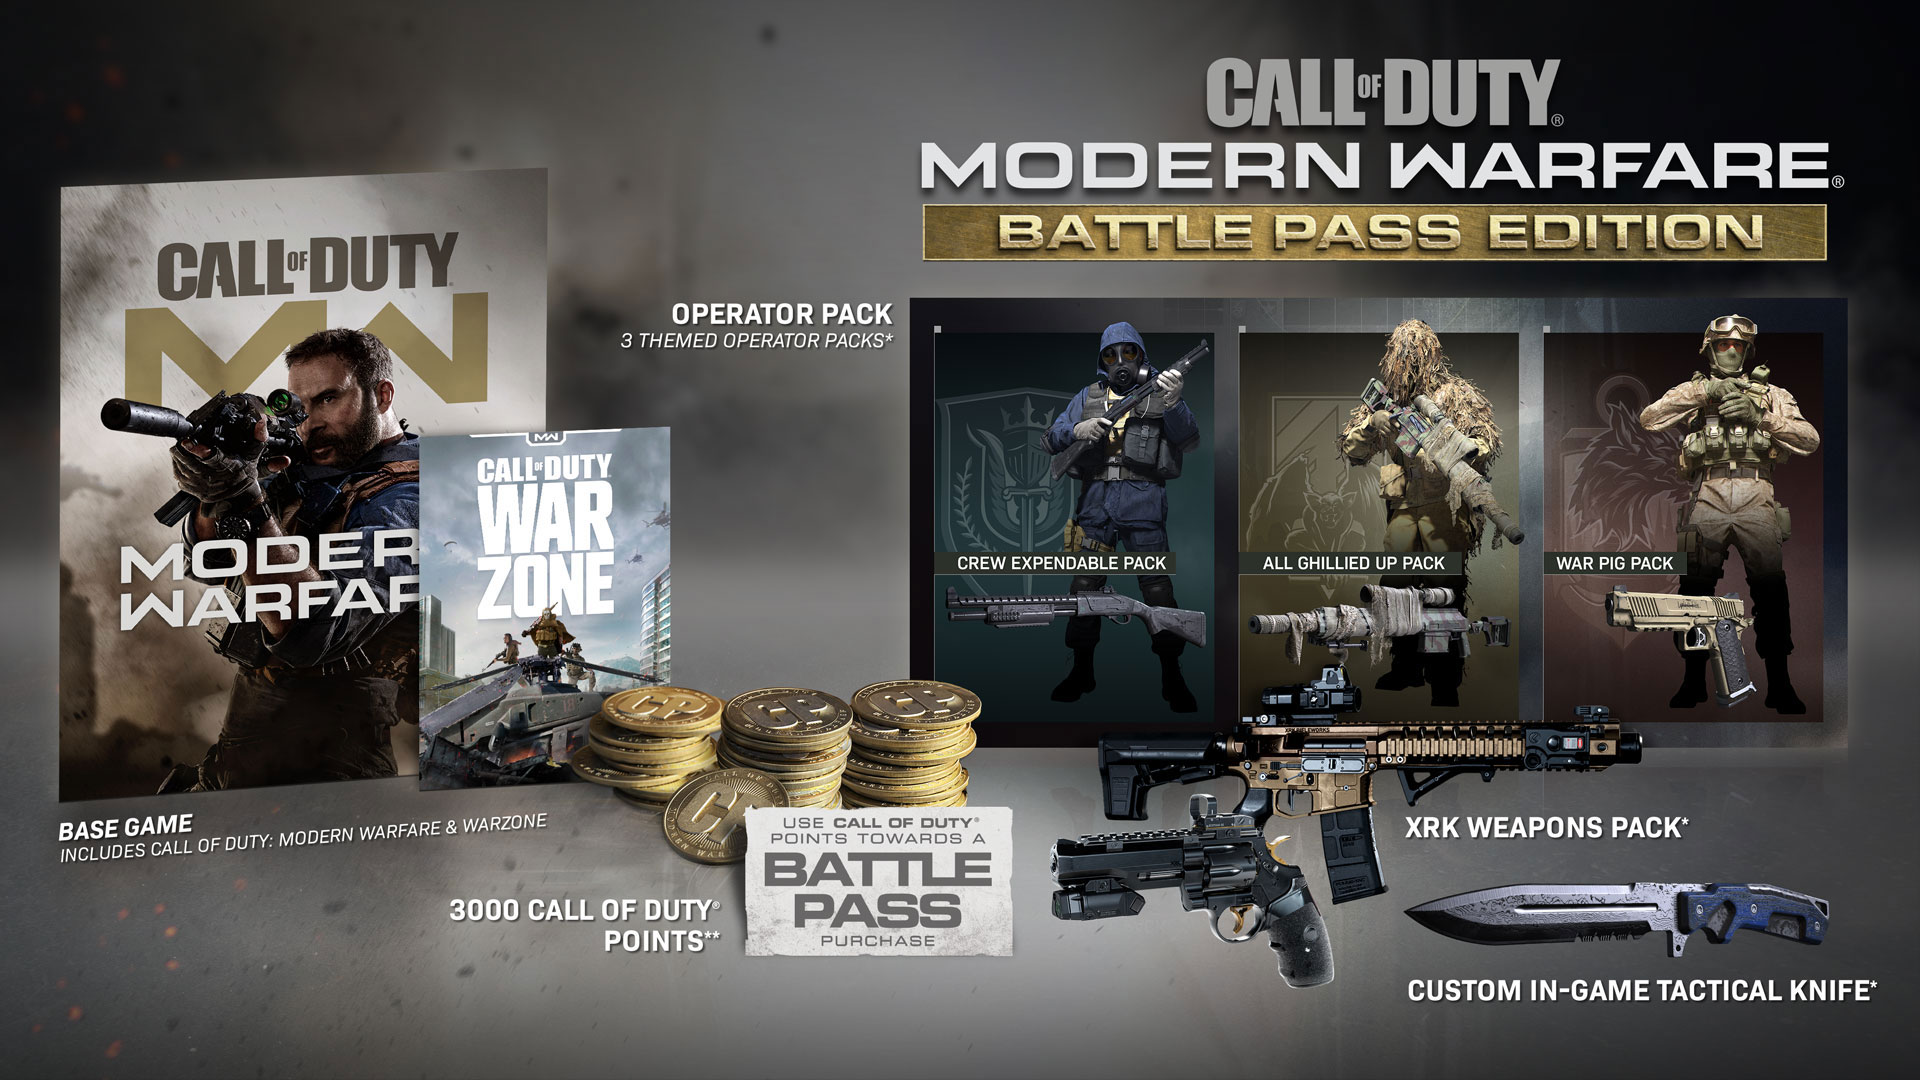 Experience Modern Warfare Multiplayer and Gunfight, Free-for-Everyone during the Free Access Multiplayer Weekend - Image 1